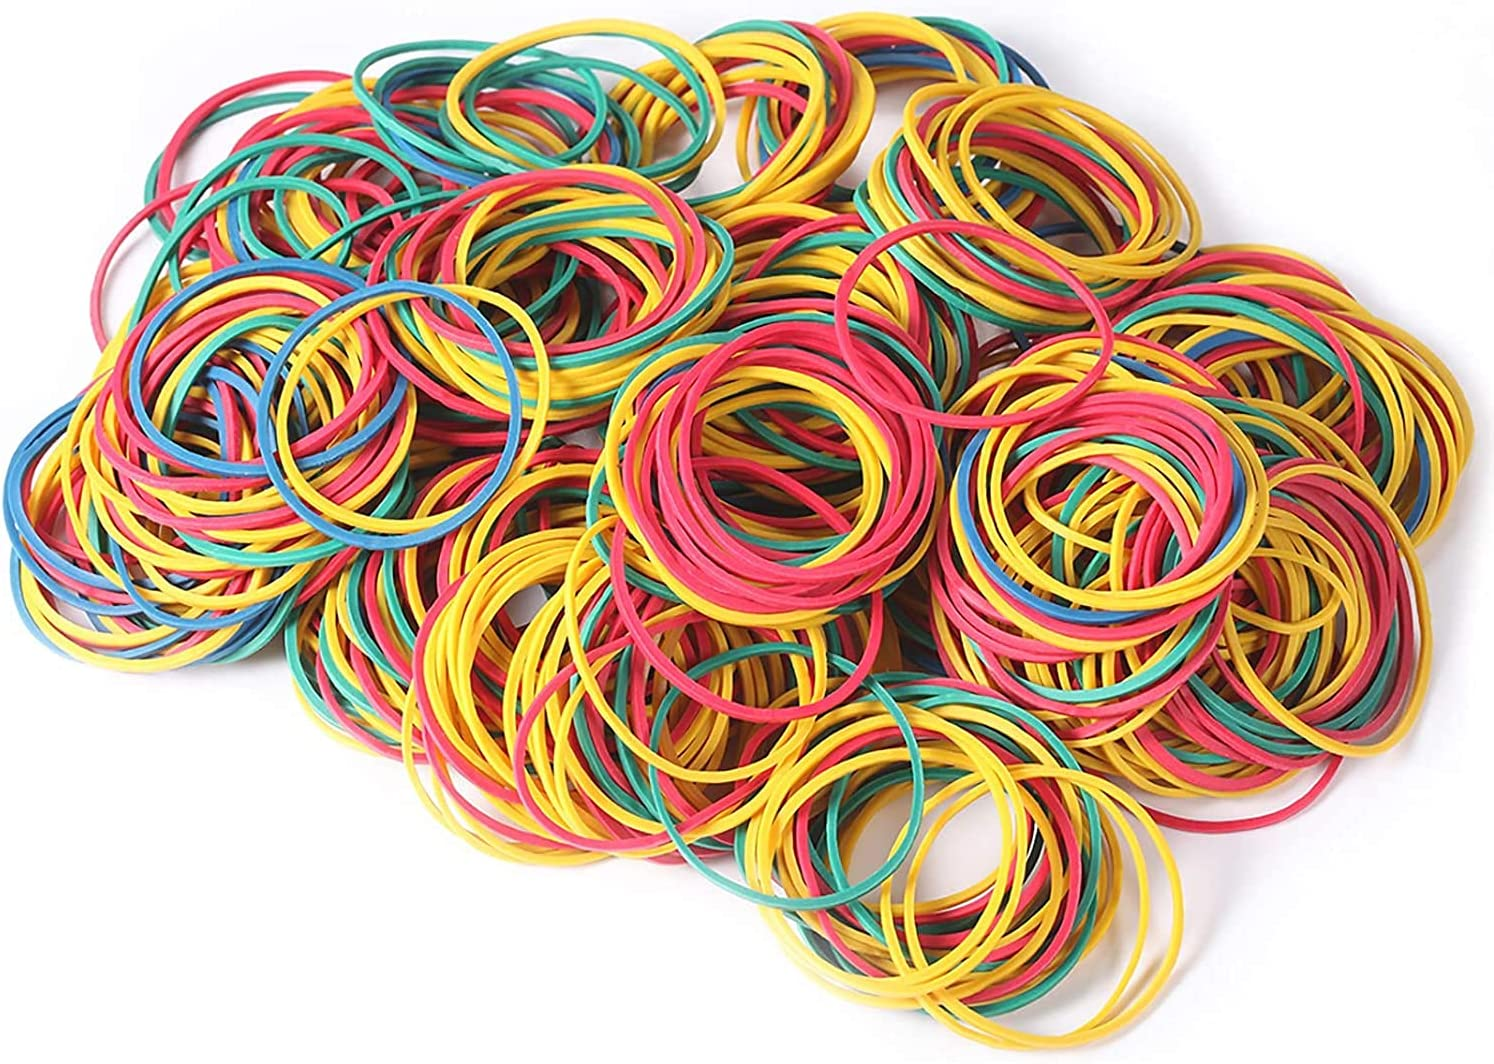 500PCS Rubber Bands Multi-Color Stretchable Elastic Bands Sturdy Rubber Bands for School Home and Office Use Stationery Supplies